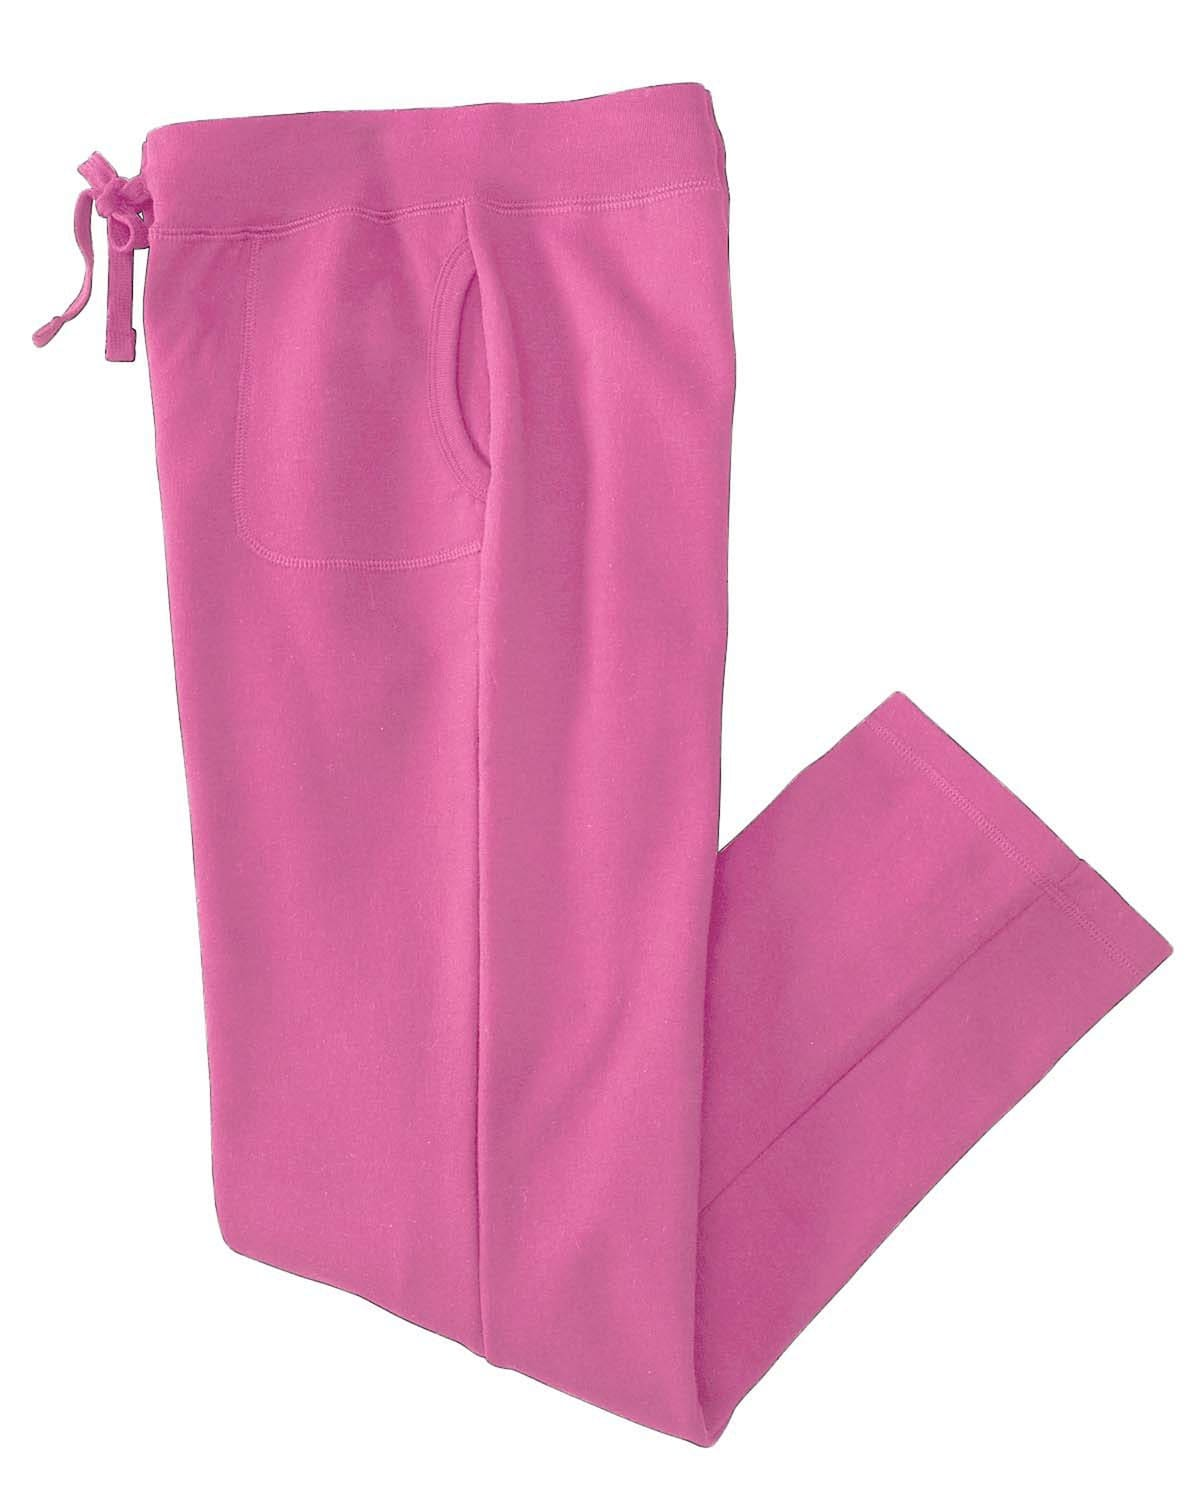 g184fl-ladies-heavy-blend-ladies-8-oz-50-50-open-bottom-sweatpants-Small-AZALEA-Oasispromos